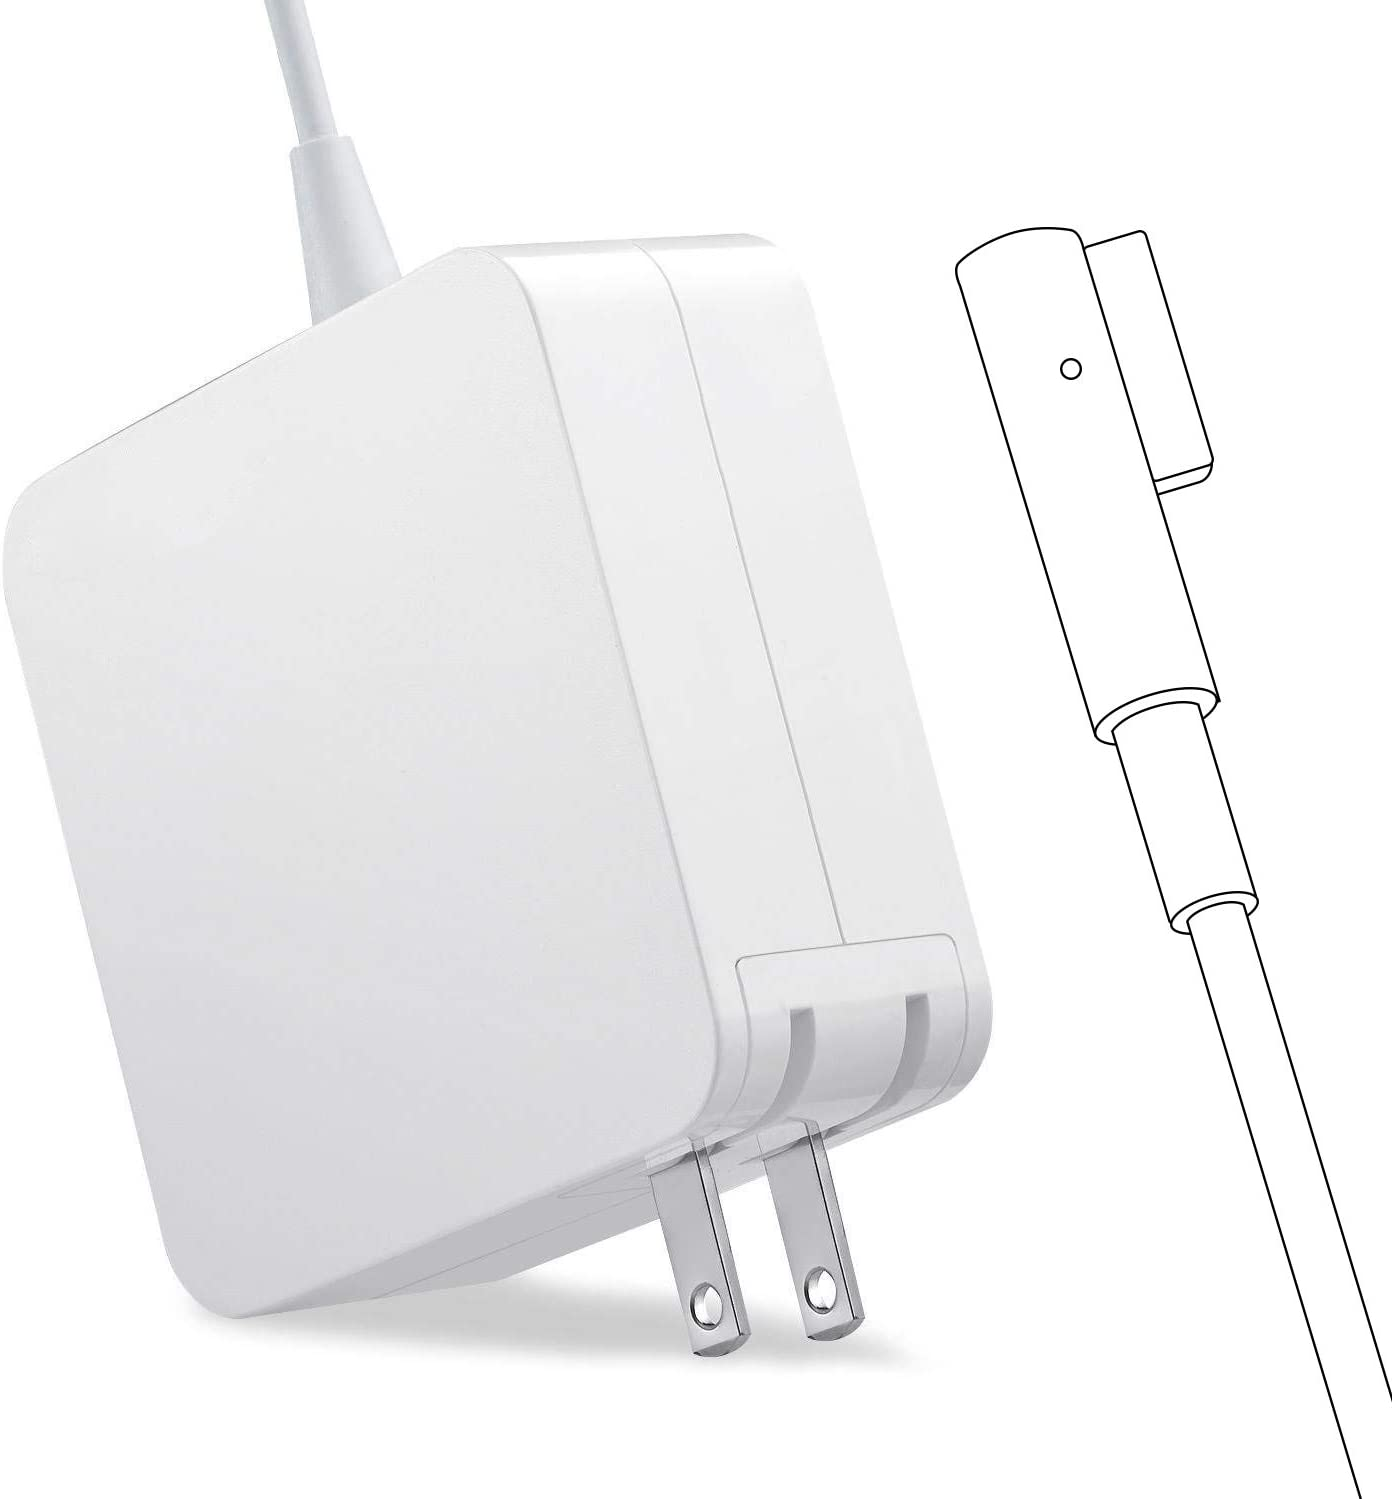 Mac Book pro Charger, AC 85w Magnetic L-Tip Power Adapter Replacement for MacBook Pro-13/15/17 Inch (Before 2012)